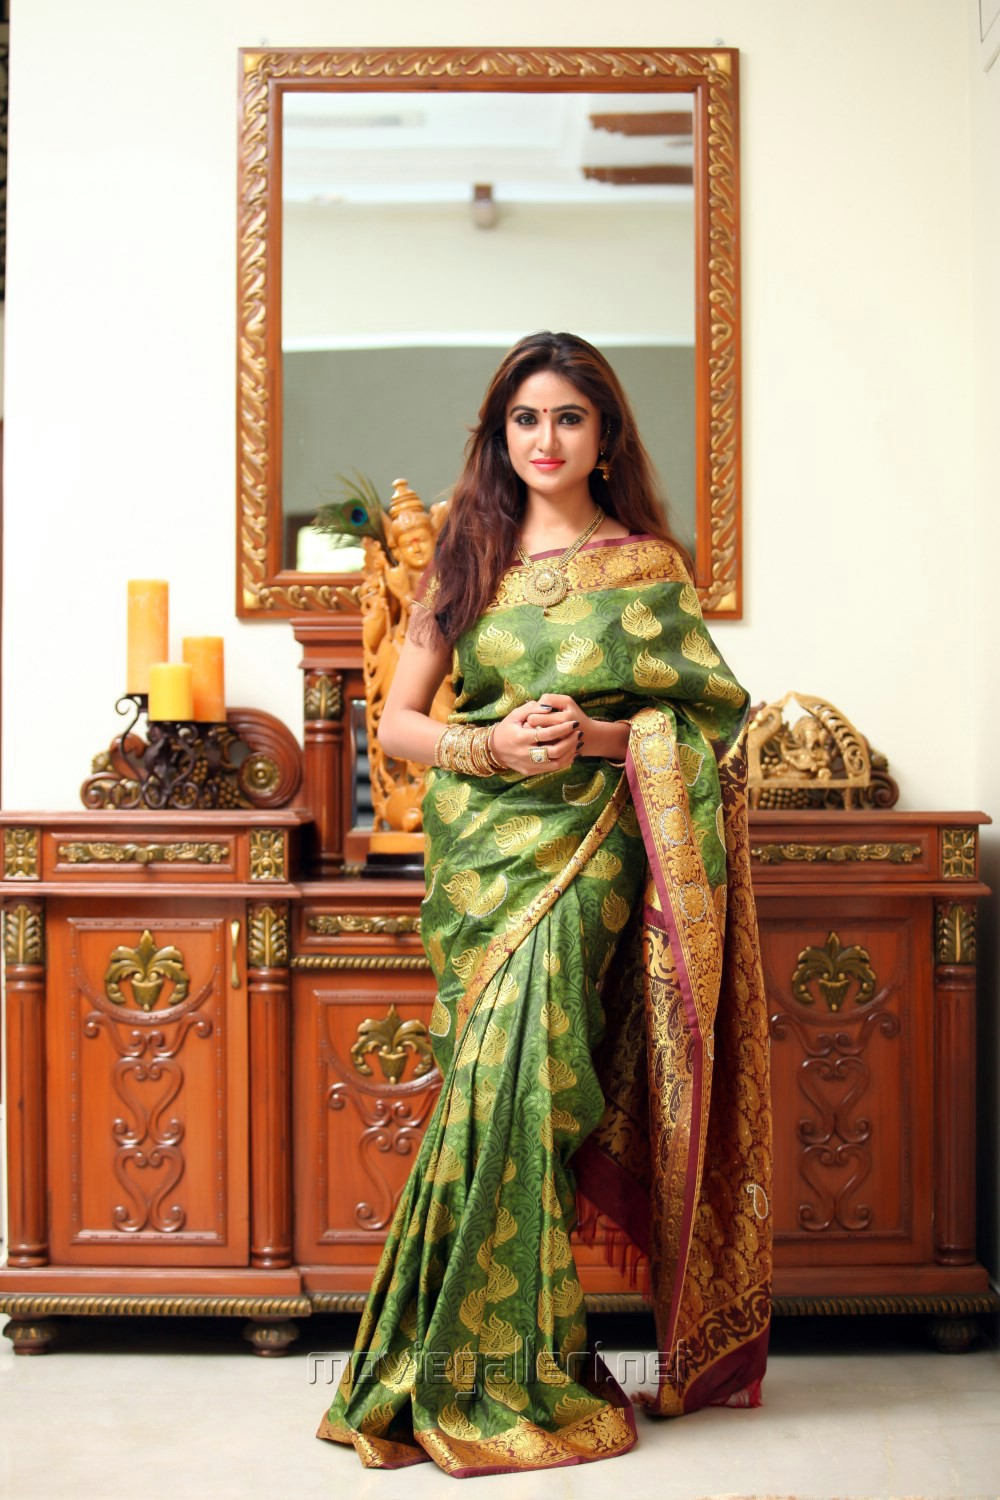 Actress Sony Charishta in Silk Saree Photoshoot Images